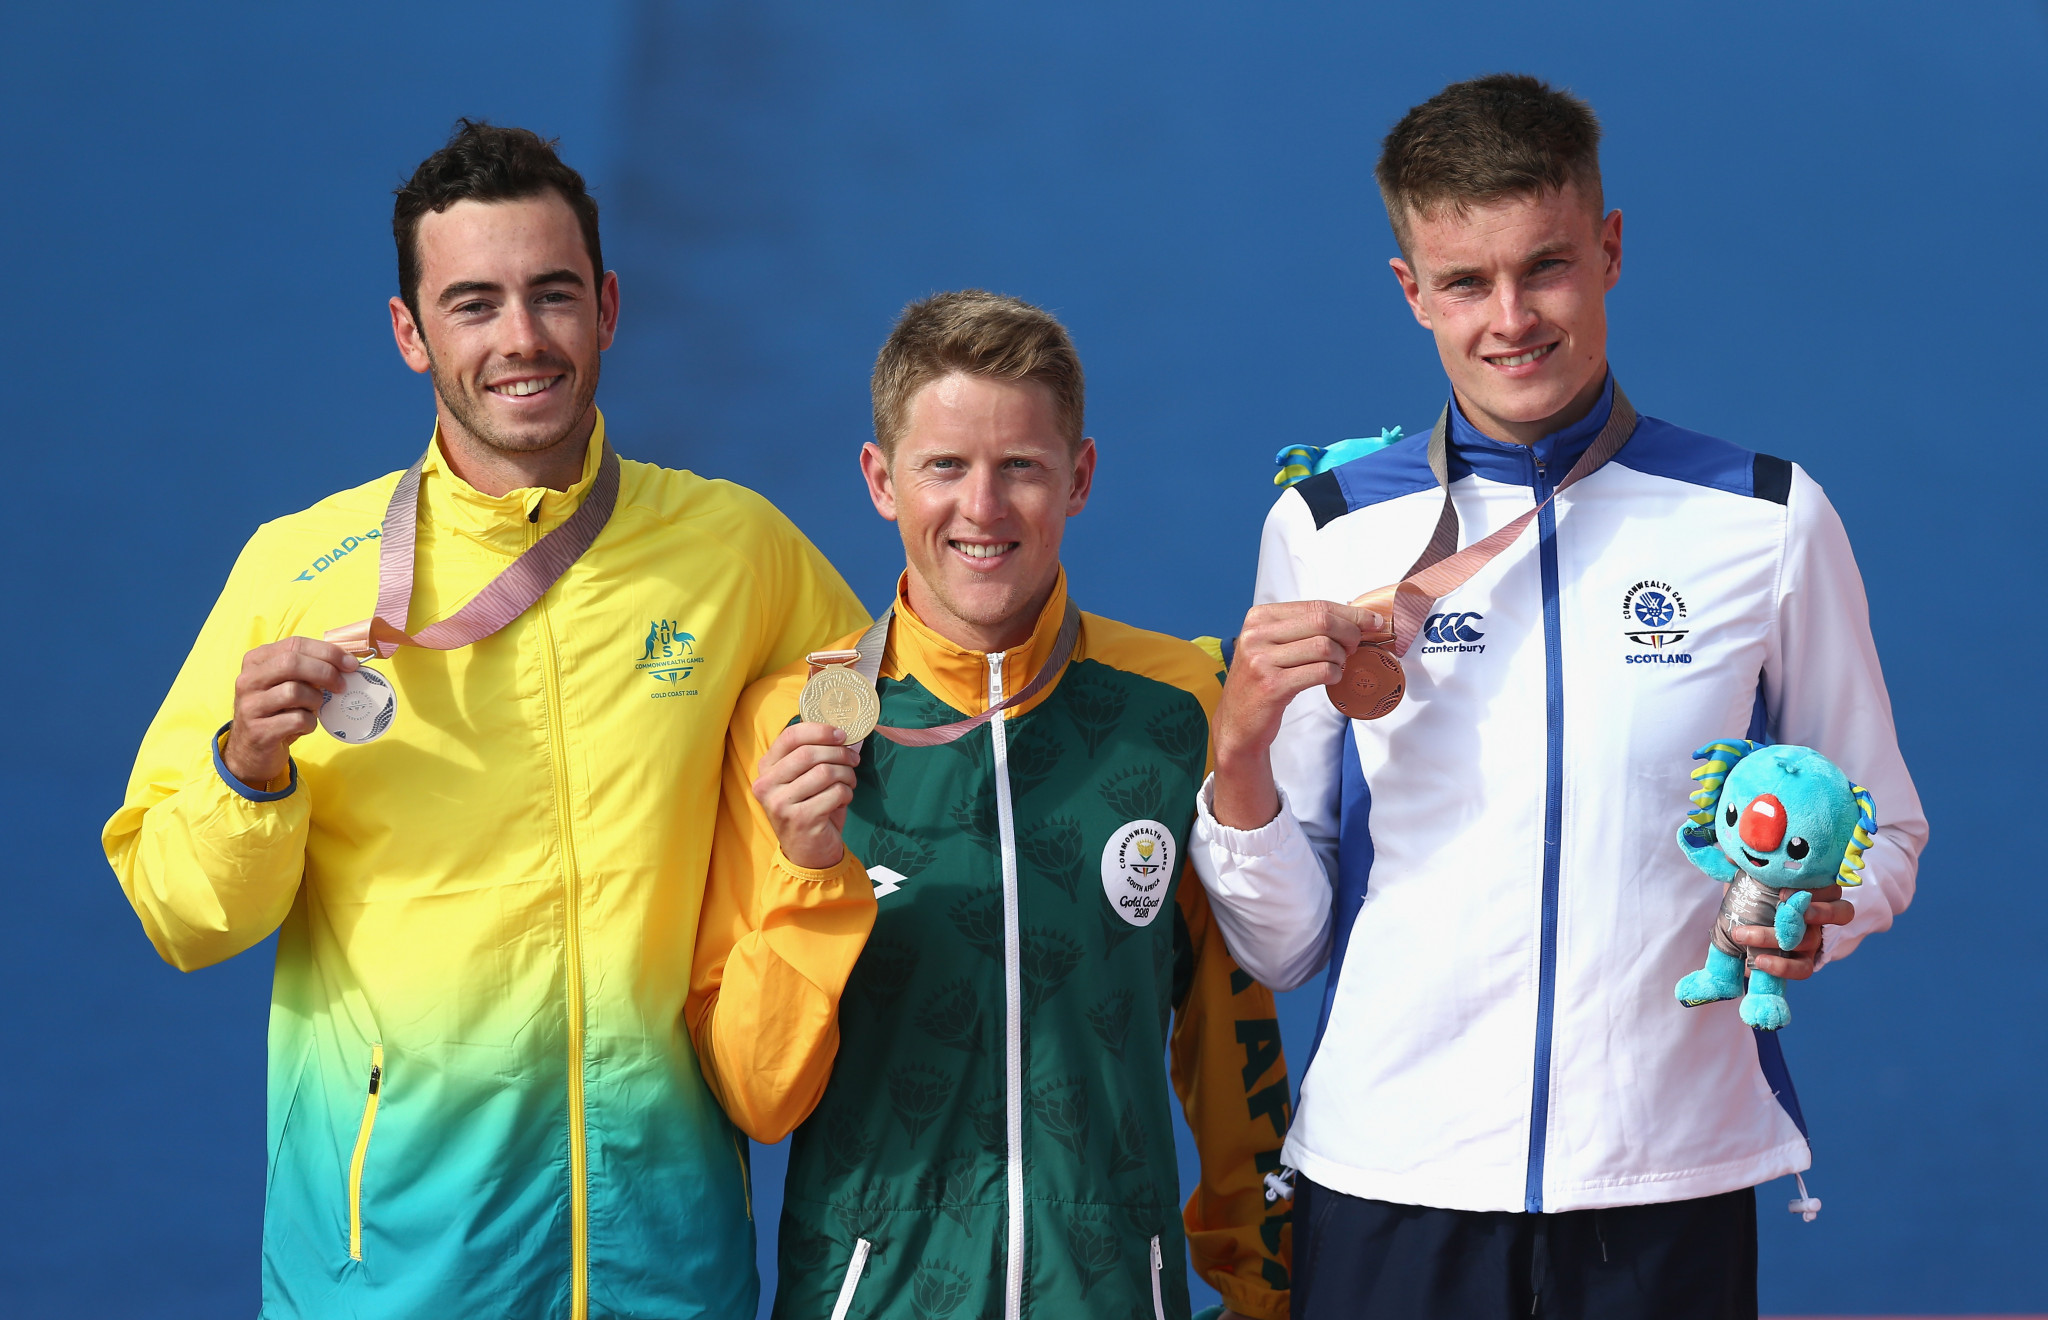 Marc Austin, right, won Scotland's first triathlon medal at the 2018 Commonwealth Games ©Getty Images